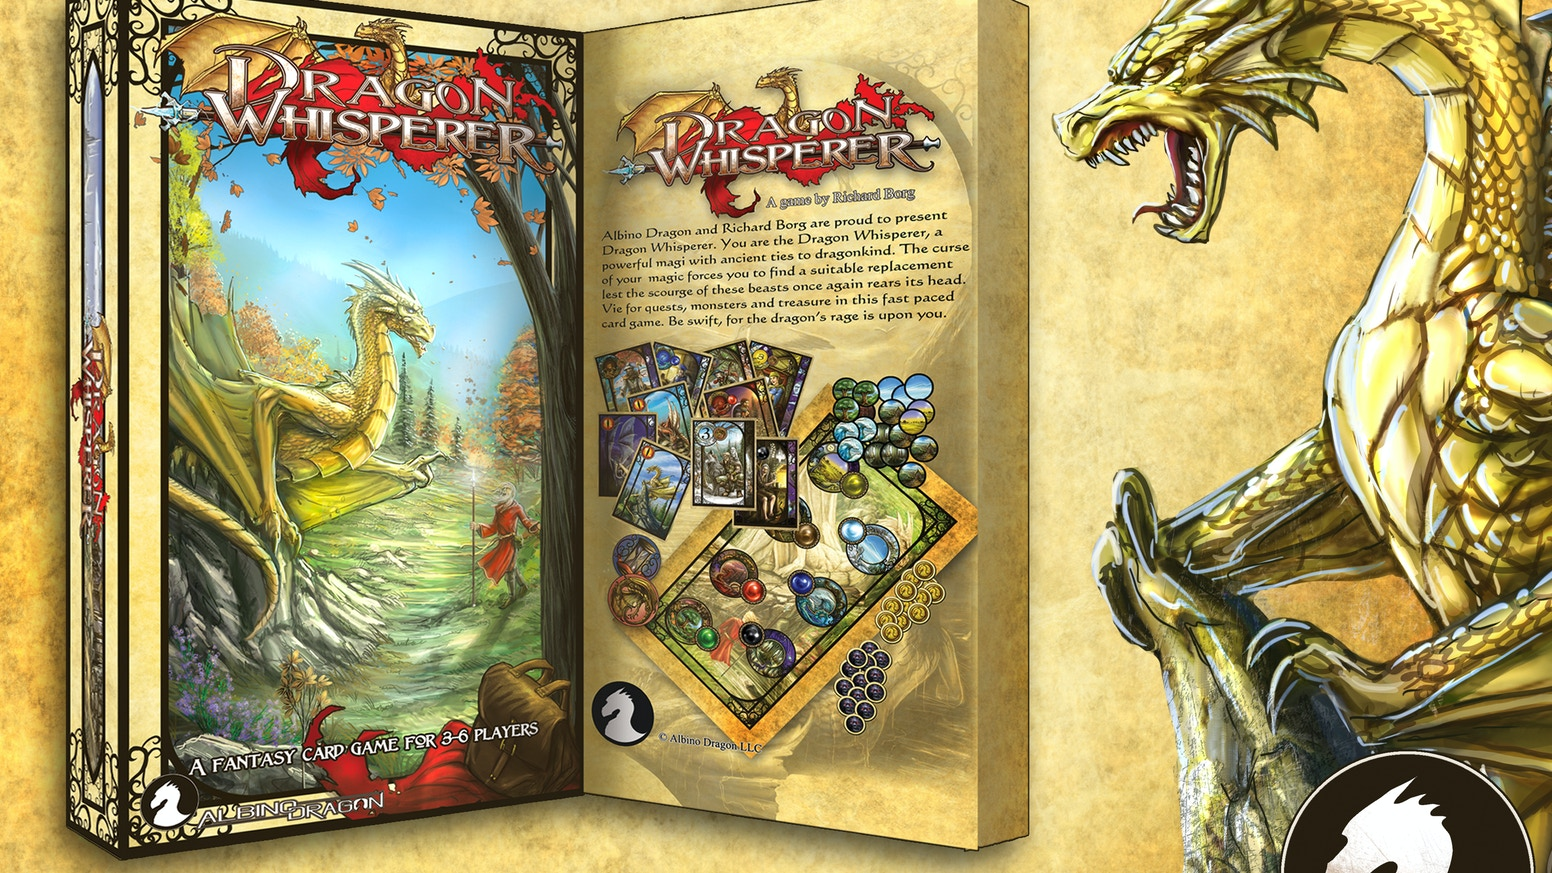 A family card game designed by Richard Borg that explores a rich and vibrant fantasy world created by Albino Dragon.